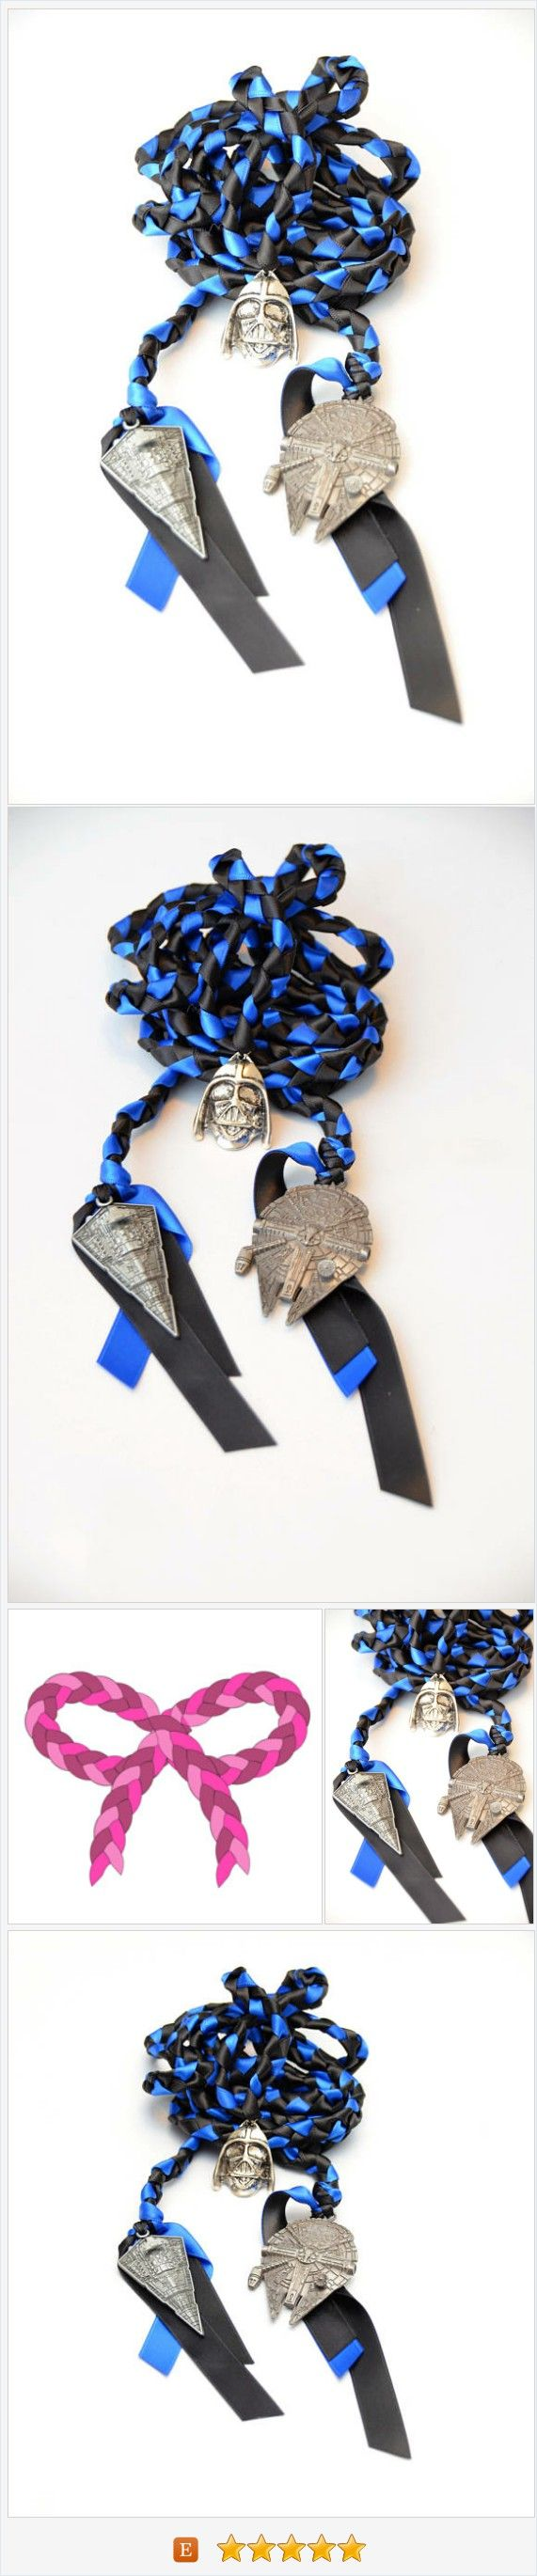 Star Wars Inspired 3 Charm Wedding Handfasting Cord ~ Sith Lord ~ TFA ~ Dark Side Of the Force ~ Darth Vader ~ Star Wars ~ Wedding https://www.etsy.com/DivinityBraid/listing/541385437/star-wars-inspired-3-charm-wedding?ref=shop_home_active_1